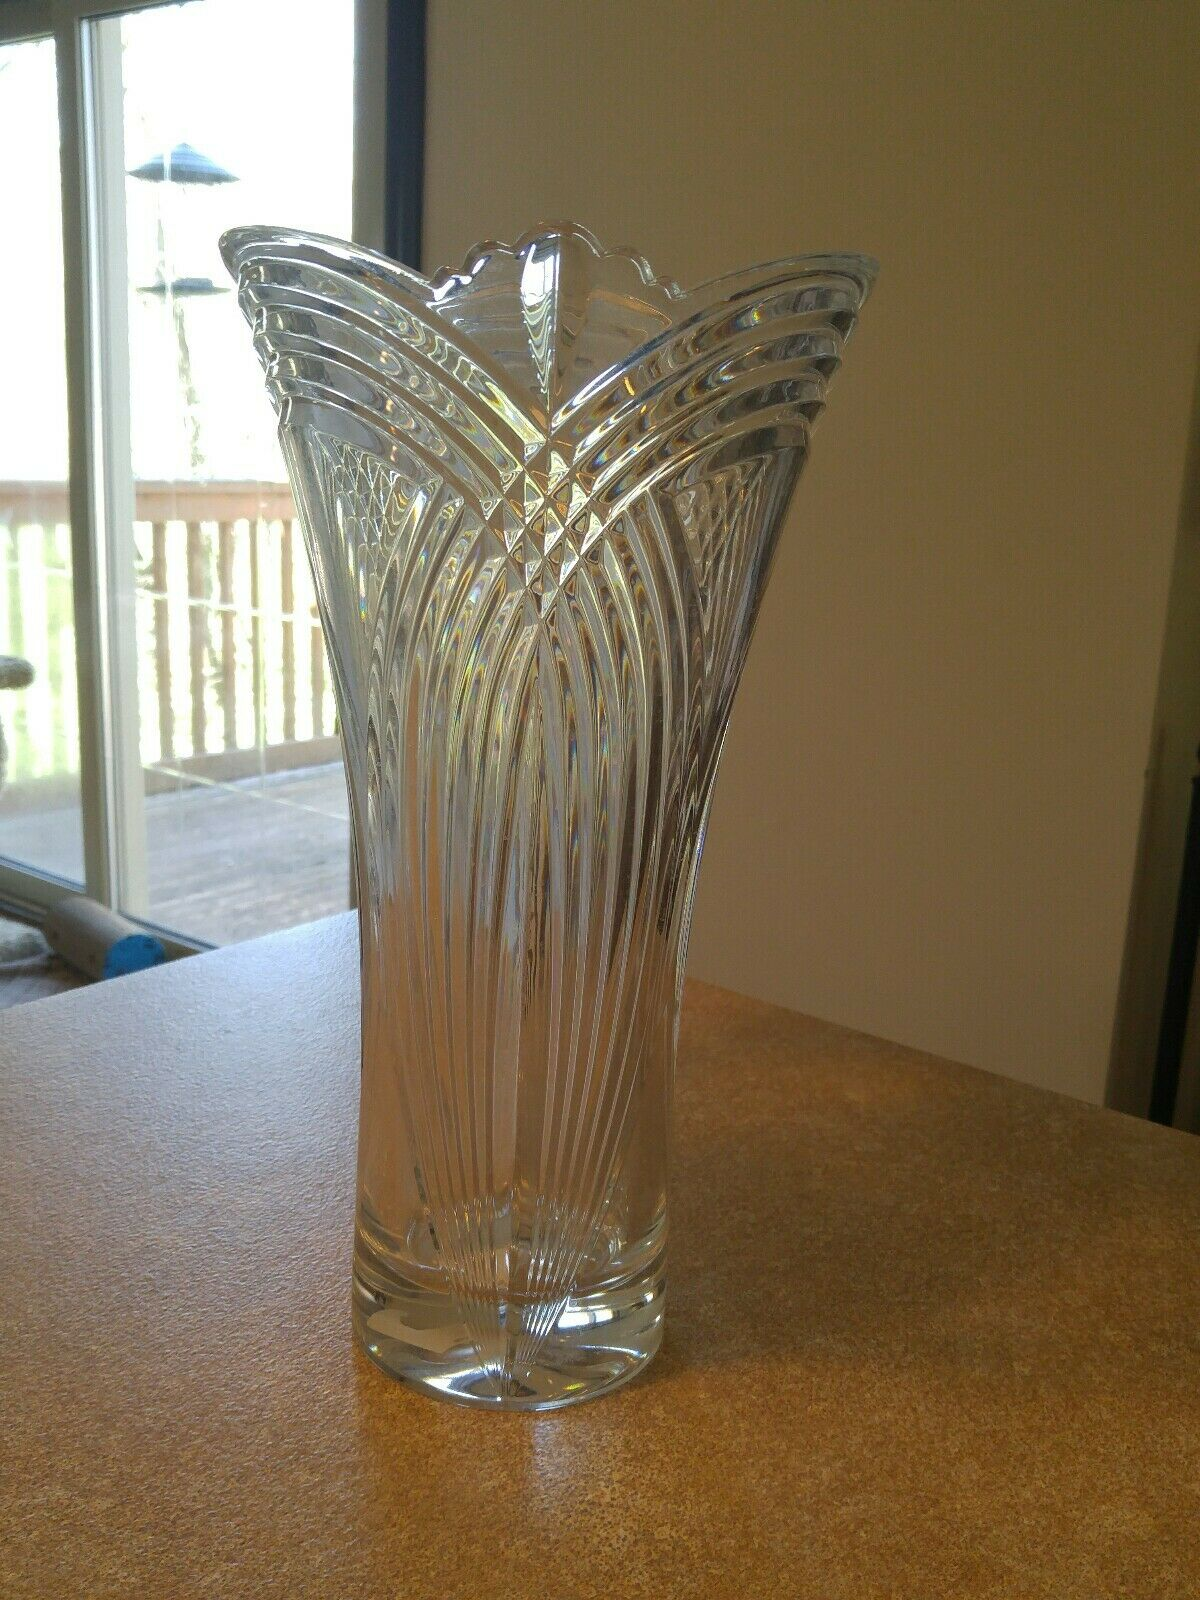 Bohemian Crystal Clear Regent 14 Tall Flair Shape Vase Made In Czech Republic For Sale Online